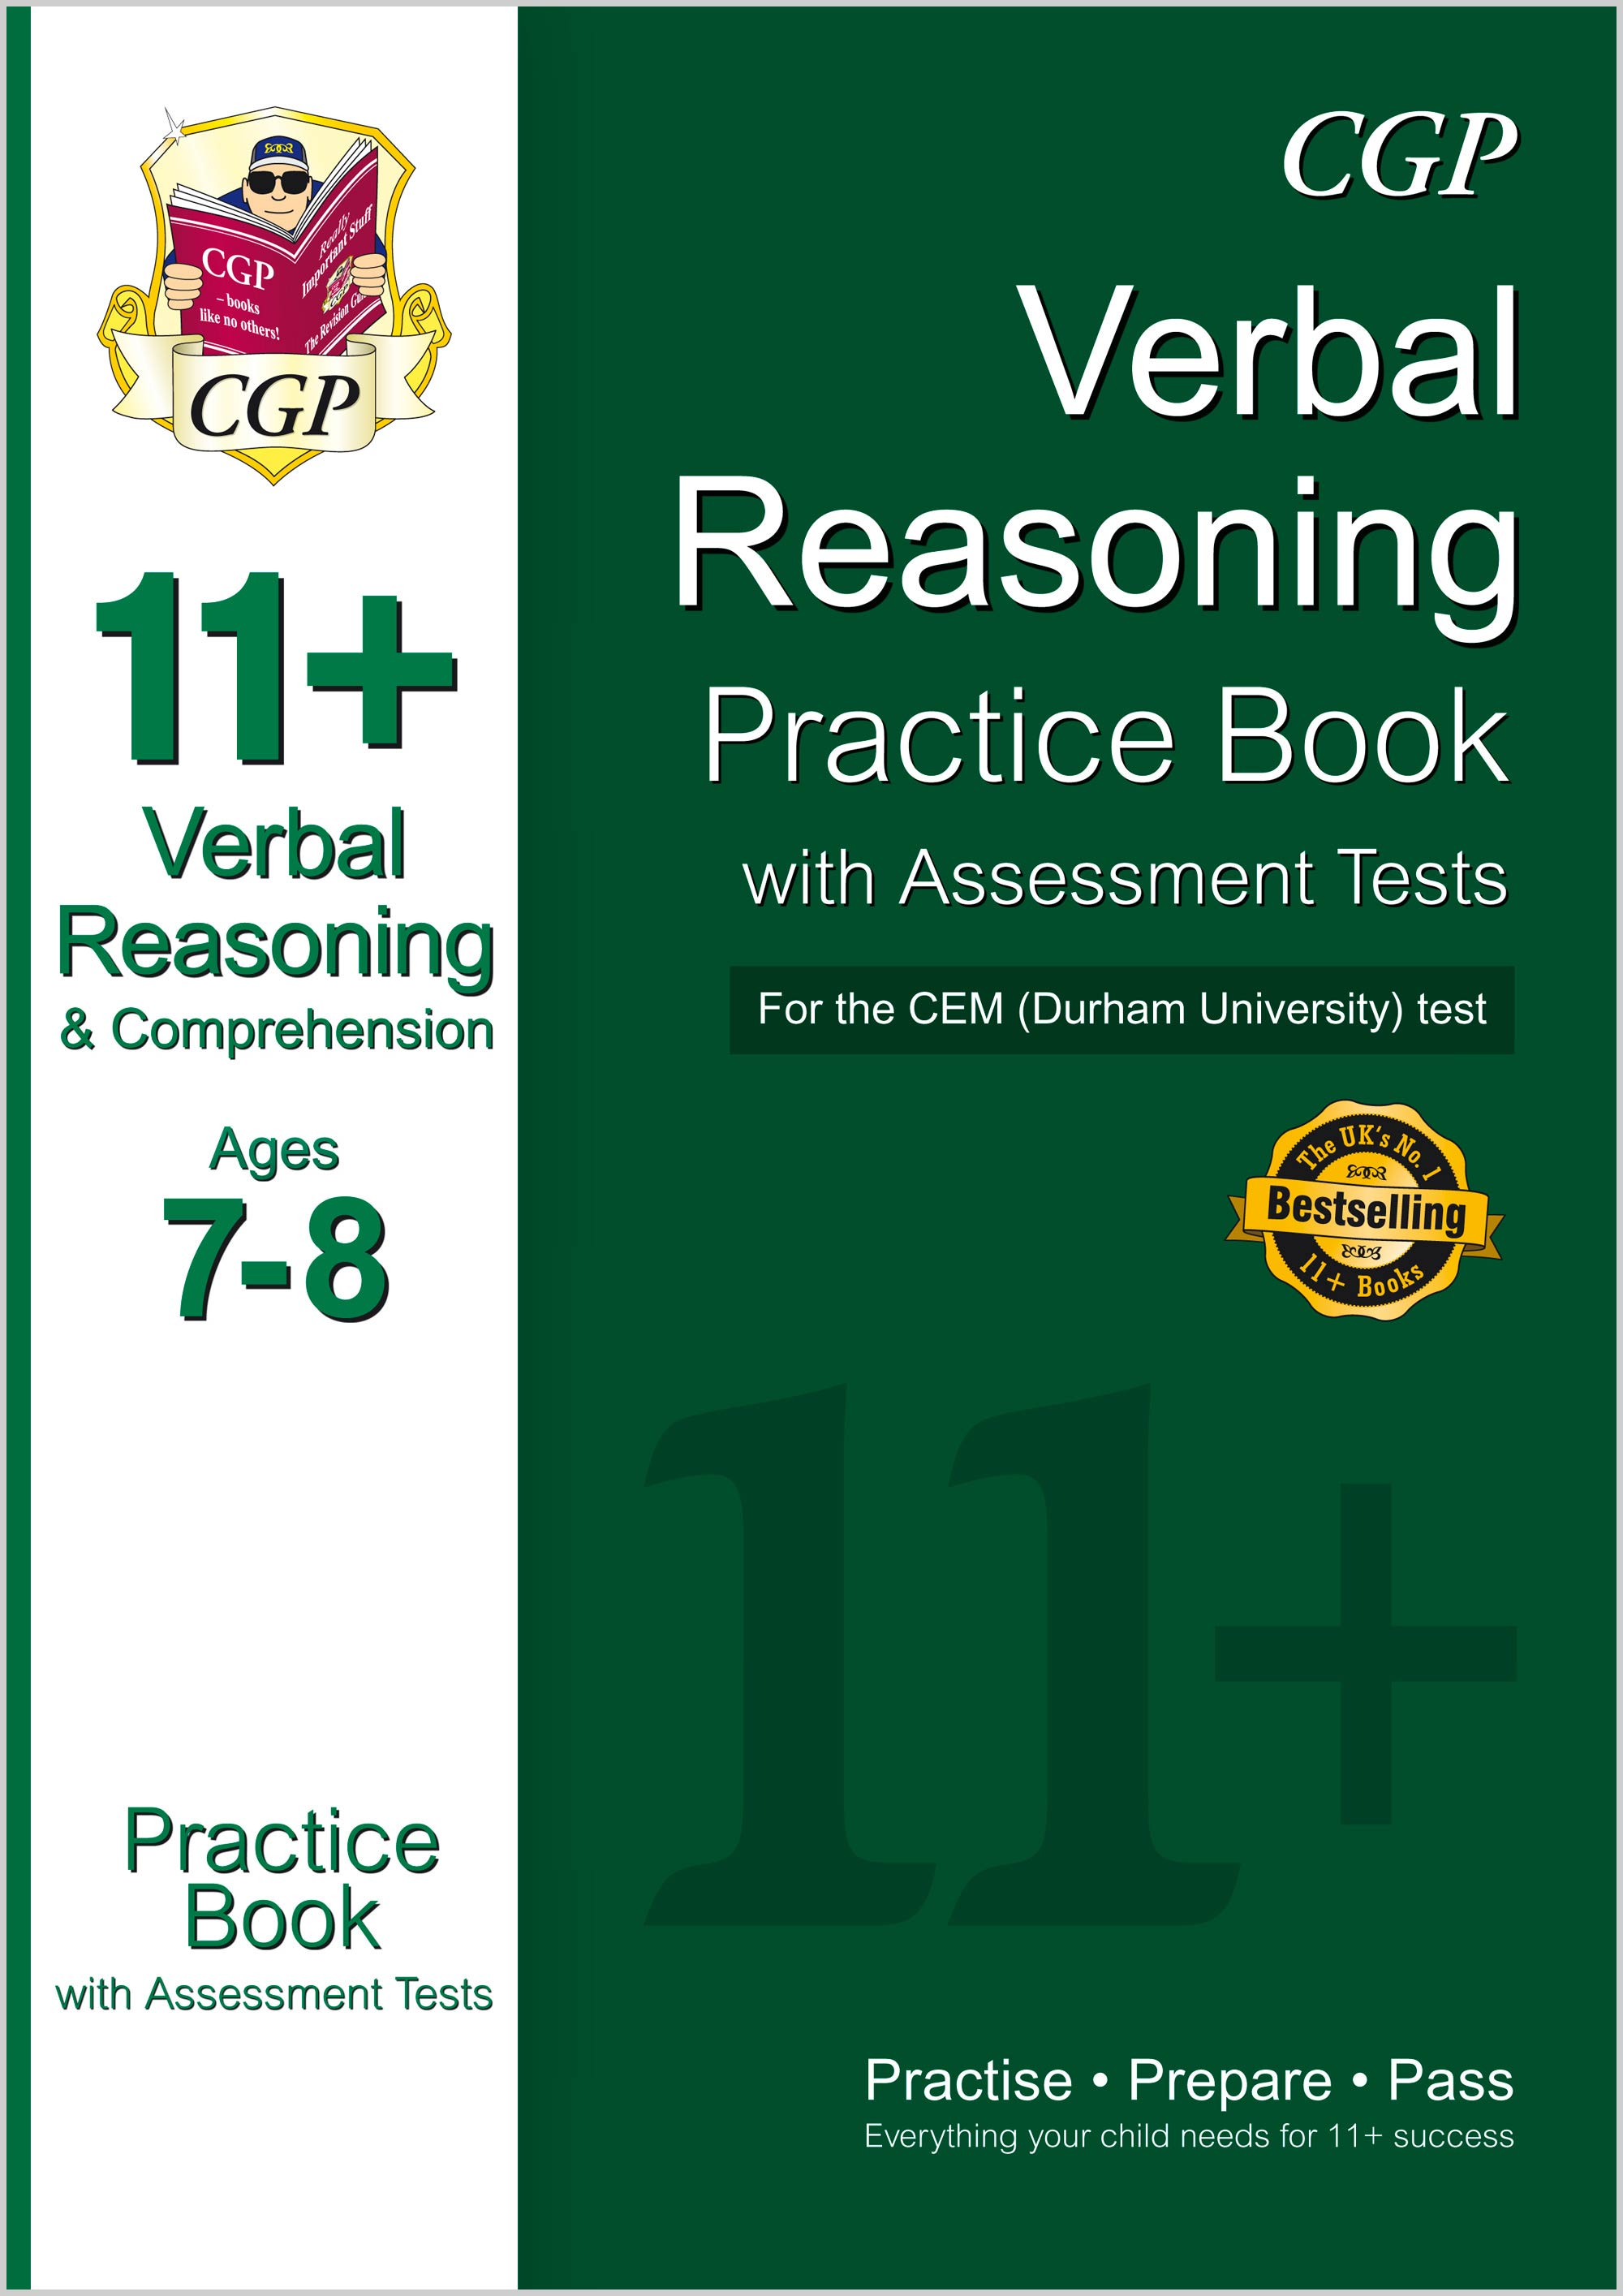 V3QDE1 - 11+ Verbal Reasoning Practice Book with Assessment Tests (Ages 7-8) for the CEM Test